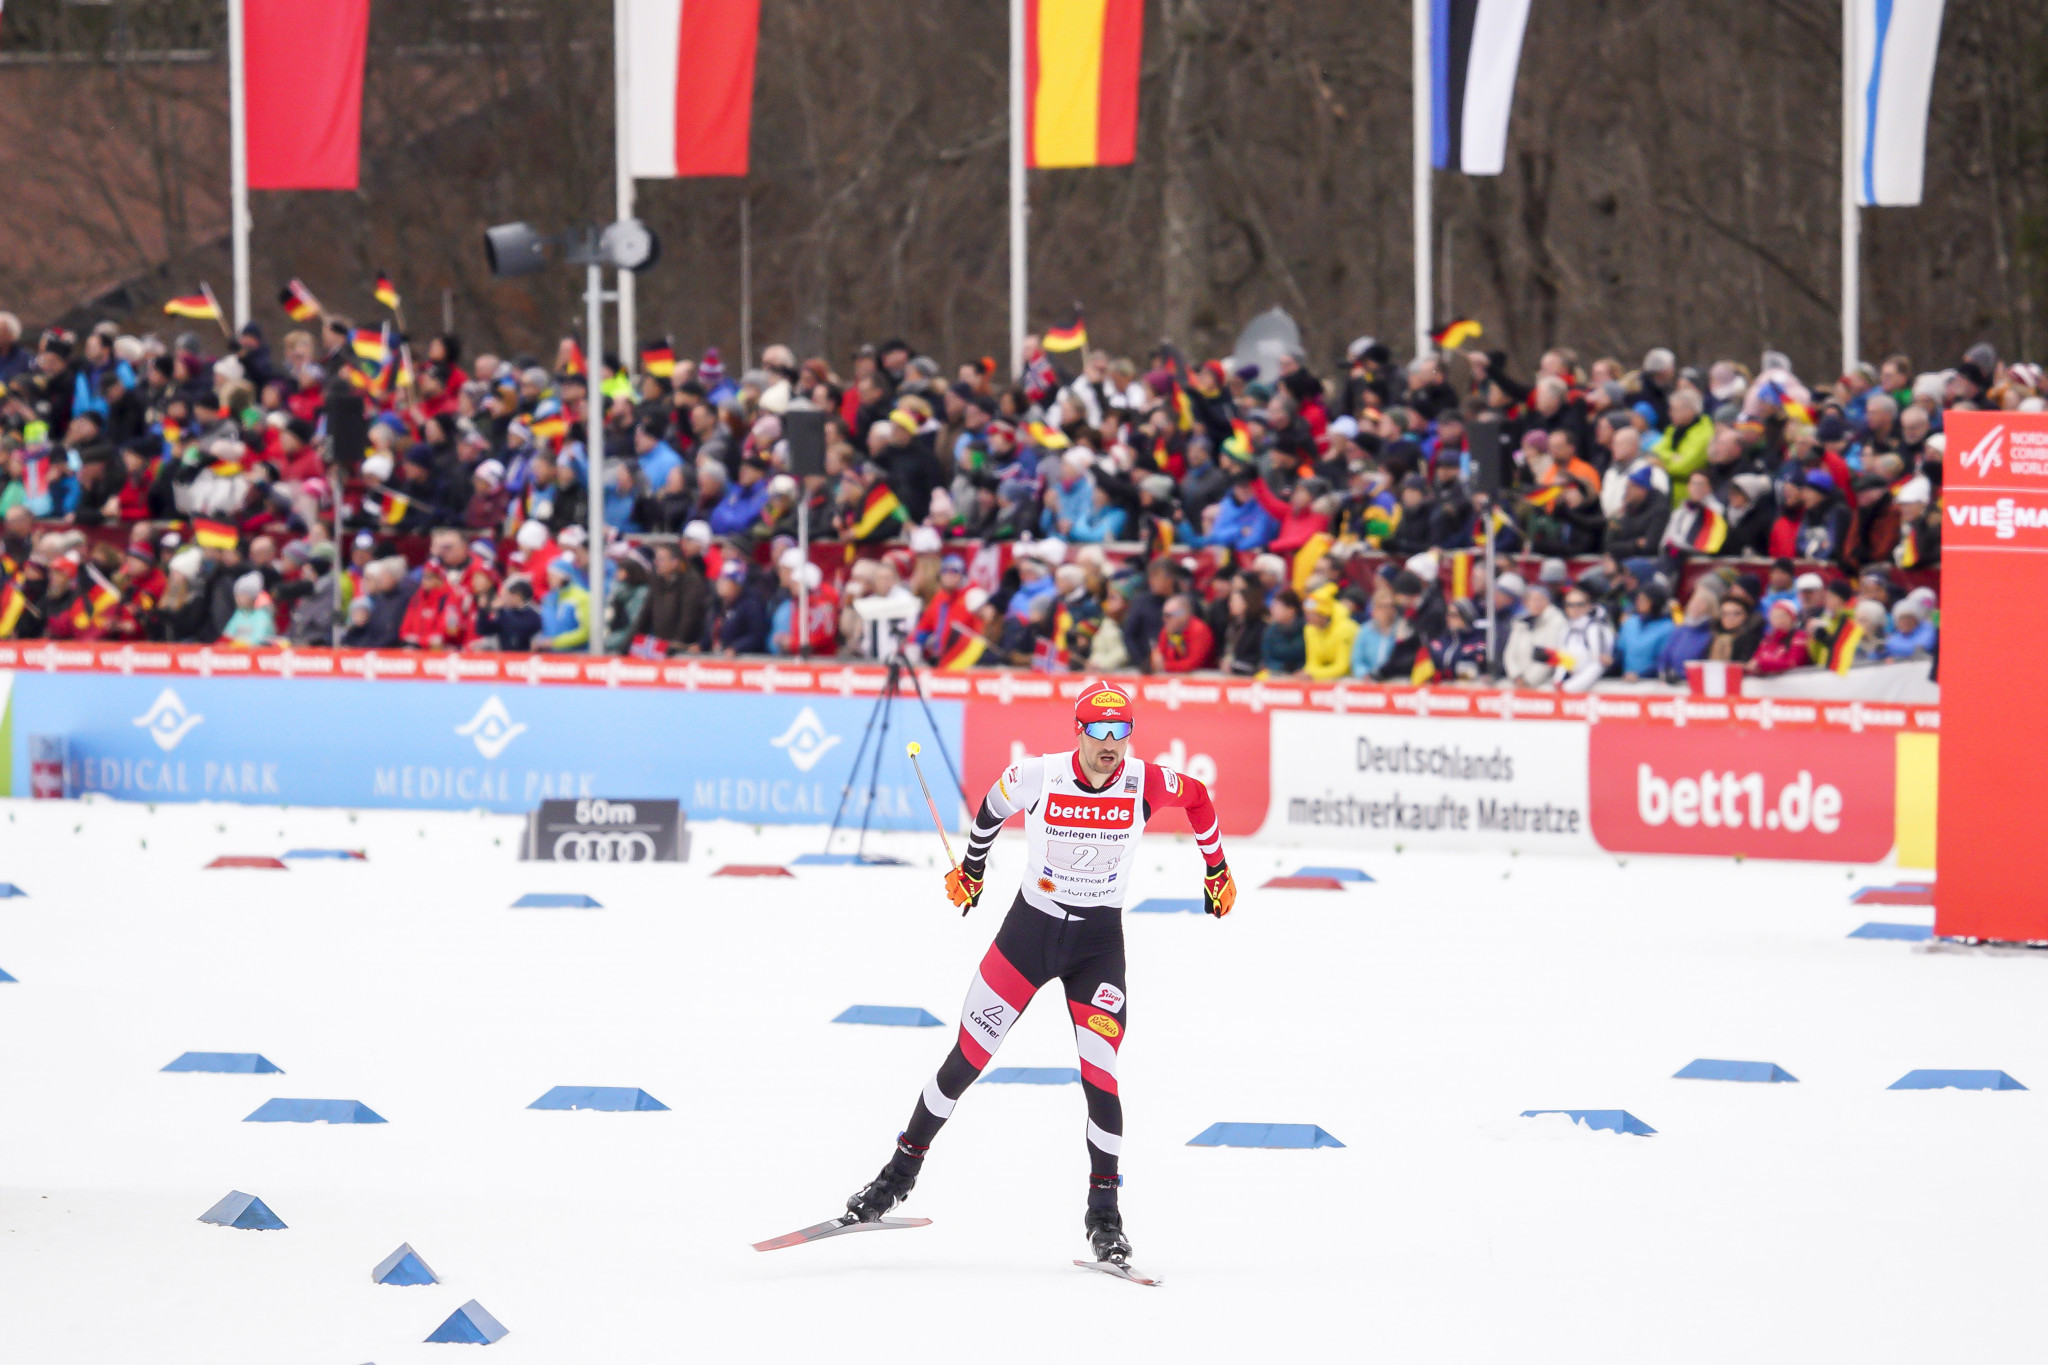 Oberstdorf in Germany will host the test events for the 2021 FIS Nordic World Ski Championships in September ©Getty Images